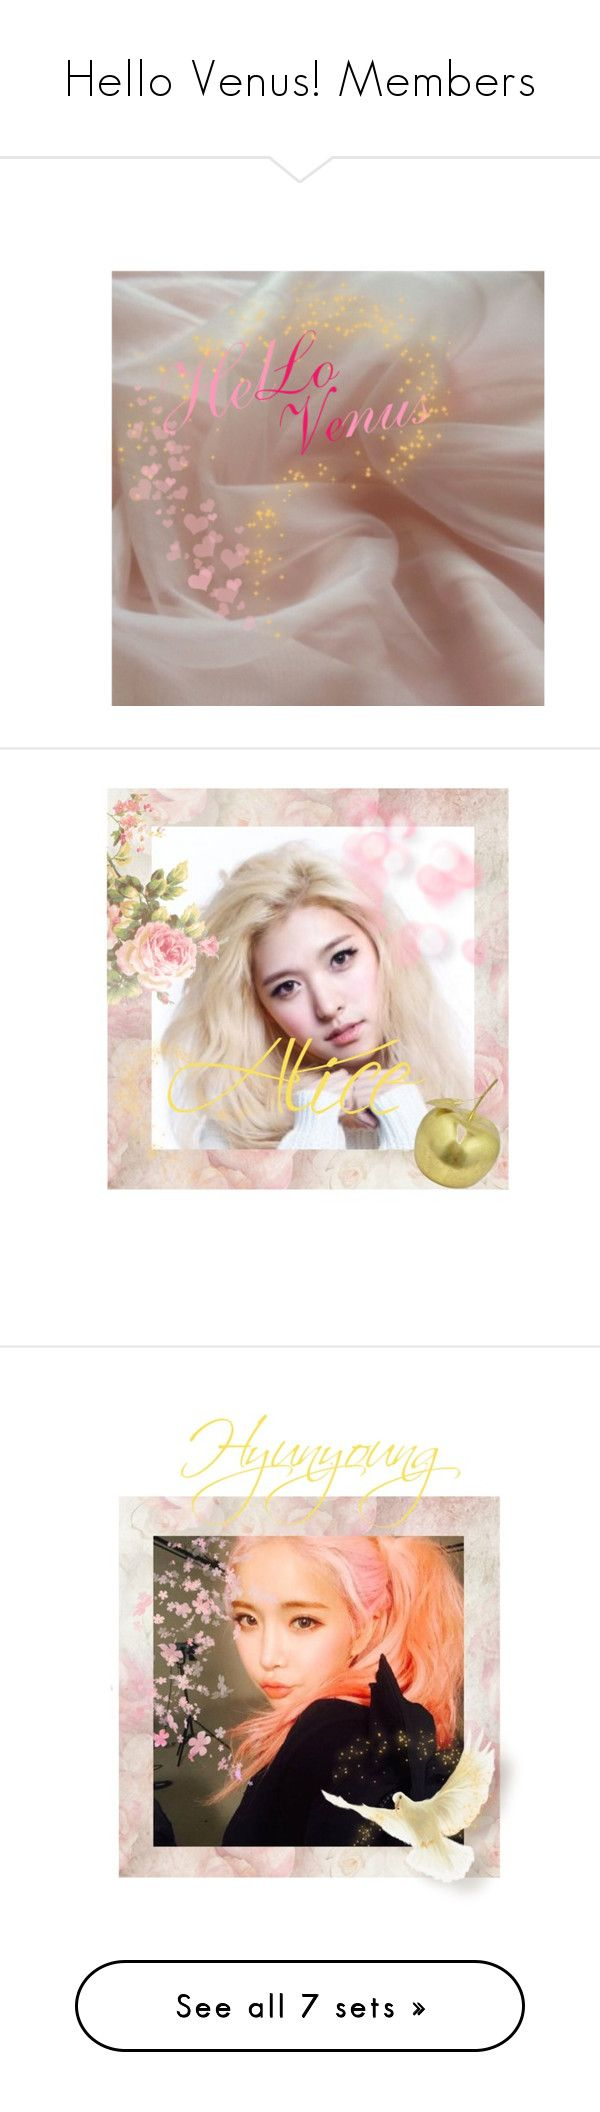 """""""Hello Venus! Members"""" by kpopgroups101 ❤ liked on Polyvore featuring art, Pixie and Zara Taylor"""